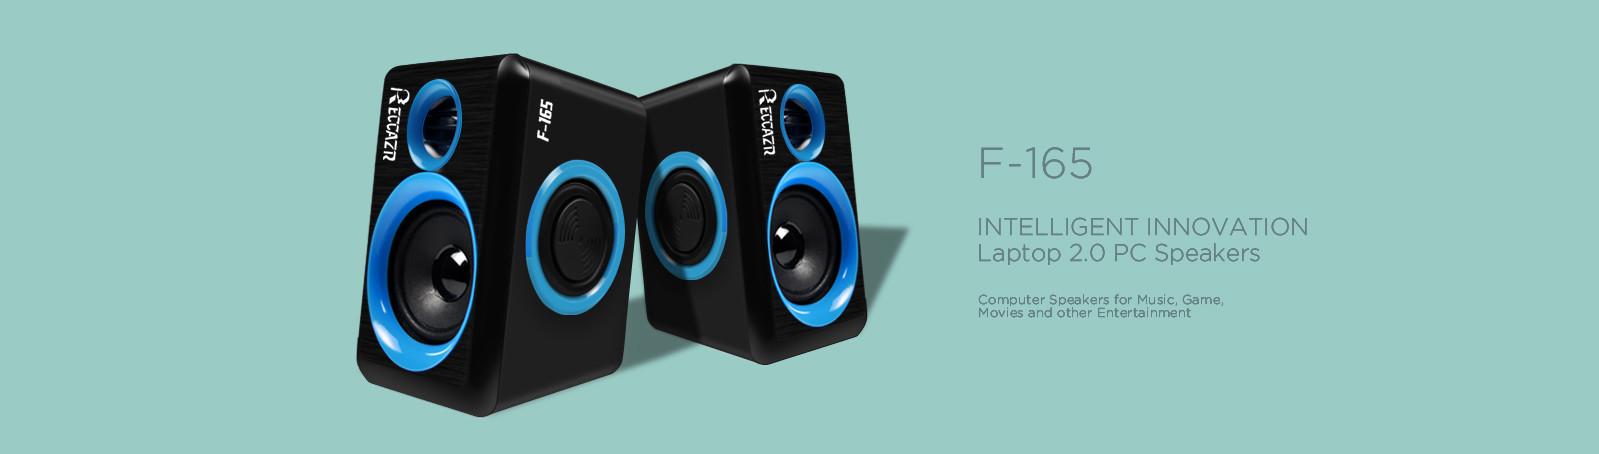 2.0 PC Speakers